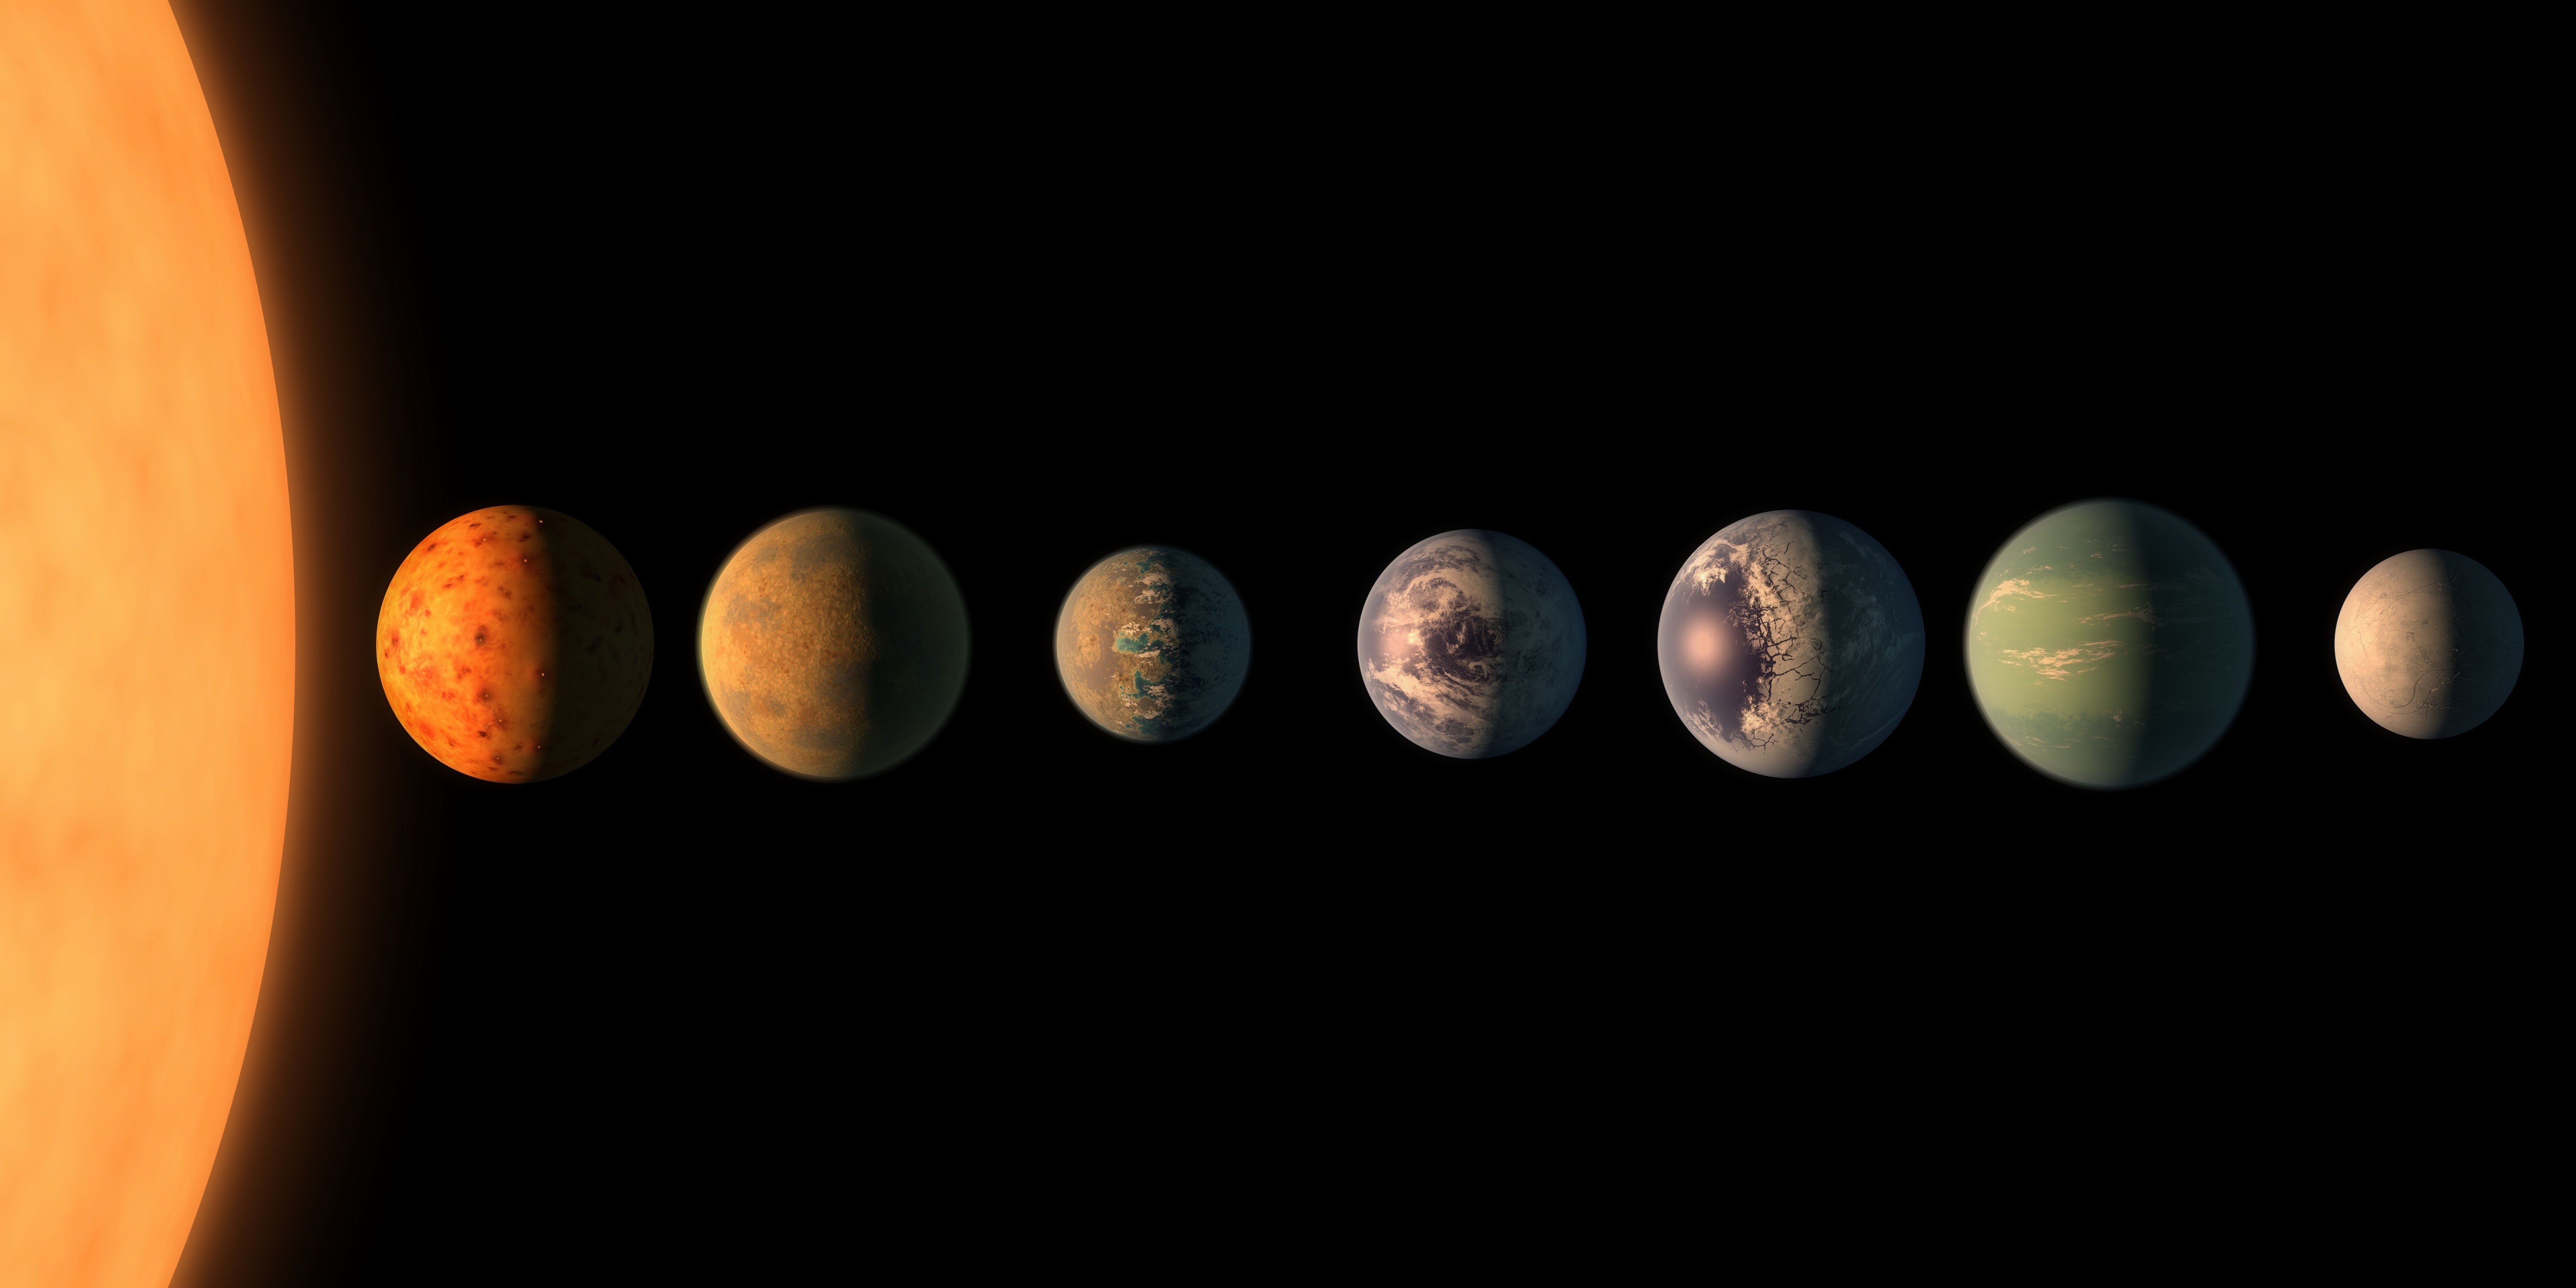 This artist's conception shows what the TRAPPIST-1 planetary system may look like, based on available data about their diameters, masses and distances from the host star. Caption: Nature; credit: NASA/JPL-Caltech (TRAPPIST)